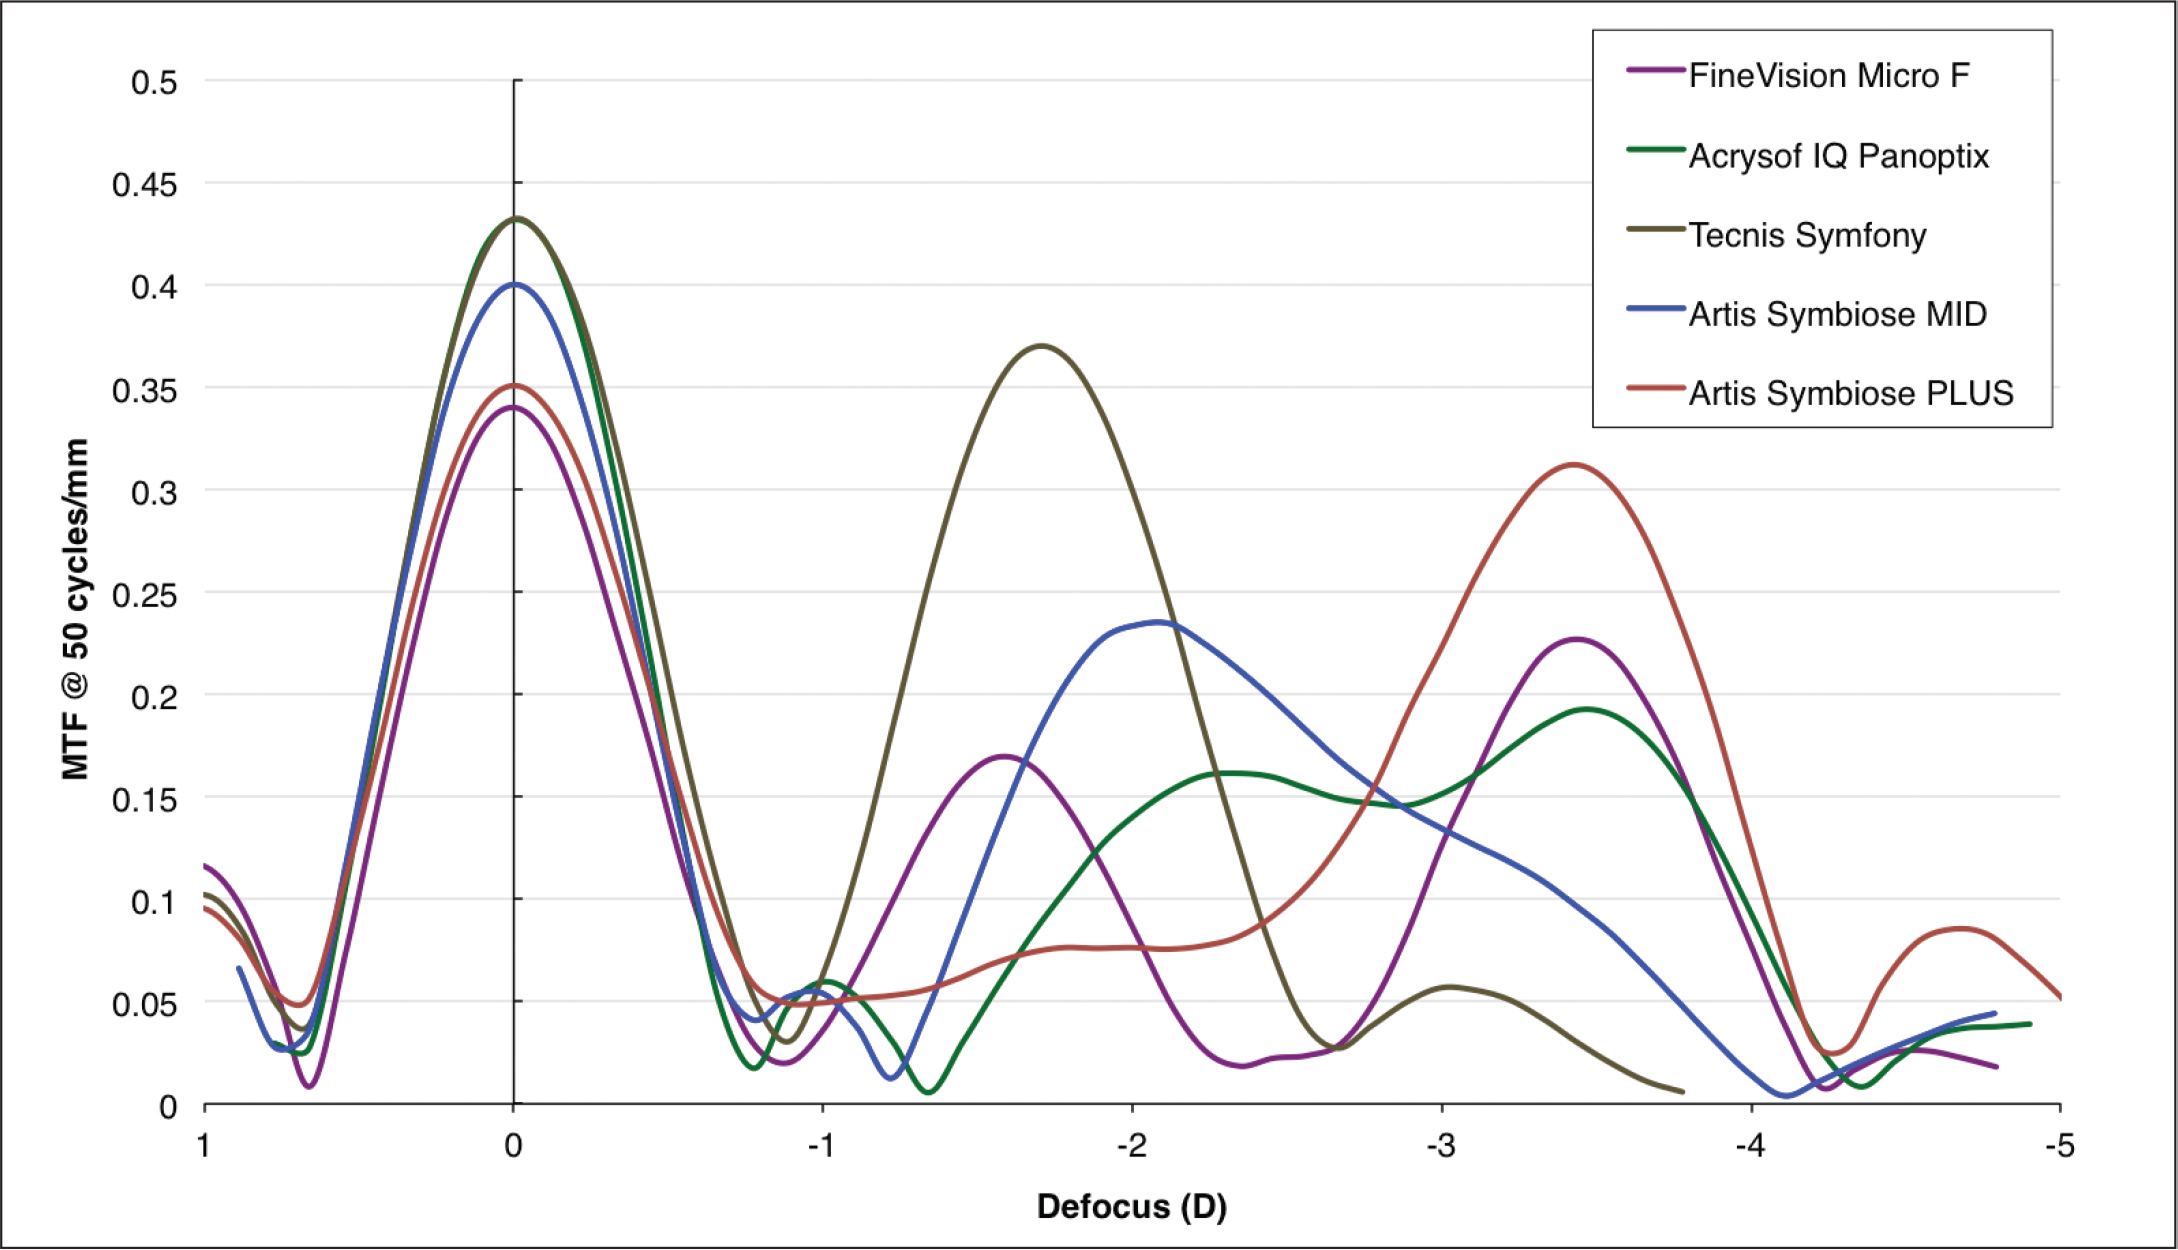 Through-focus modulation transfer function (TFMTF) of the five lenses analyzed in this study in an aberration-free eye model, for a 3-mm pupil and a 546-nm wavelength (green light). The FineVision is manufactured by PhysIOL; the Acrysof IQ PanOptix is manufactured by Novartis; the Tecnis Symfony is manufactured by Johnson & Johnson; and the Artis Symbiose Mid and Artis Symbiose Plus are manufactured by Cristalens Industrie. D = diopters